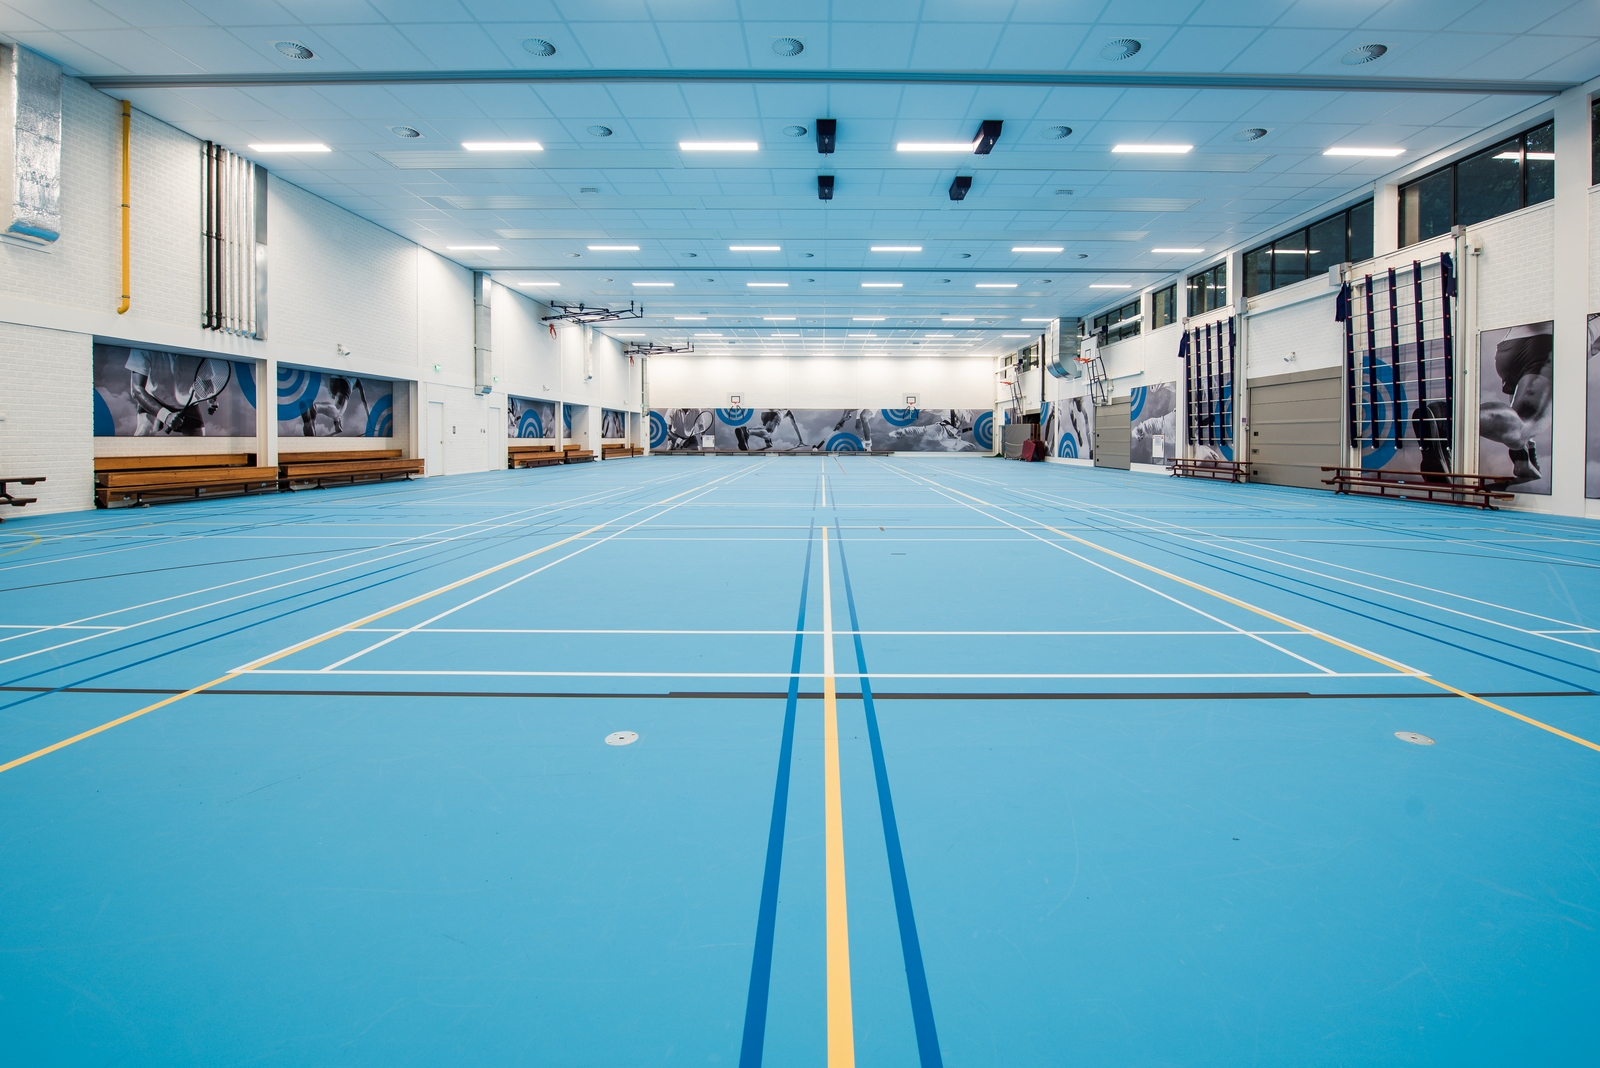 Frits_Philips_Sporthal_Eindhoven_HR_03 (Copiar)